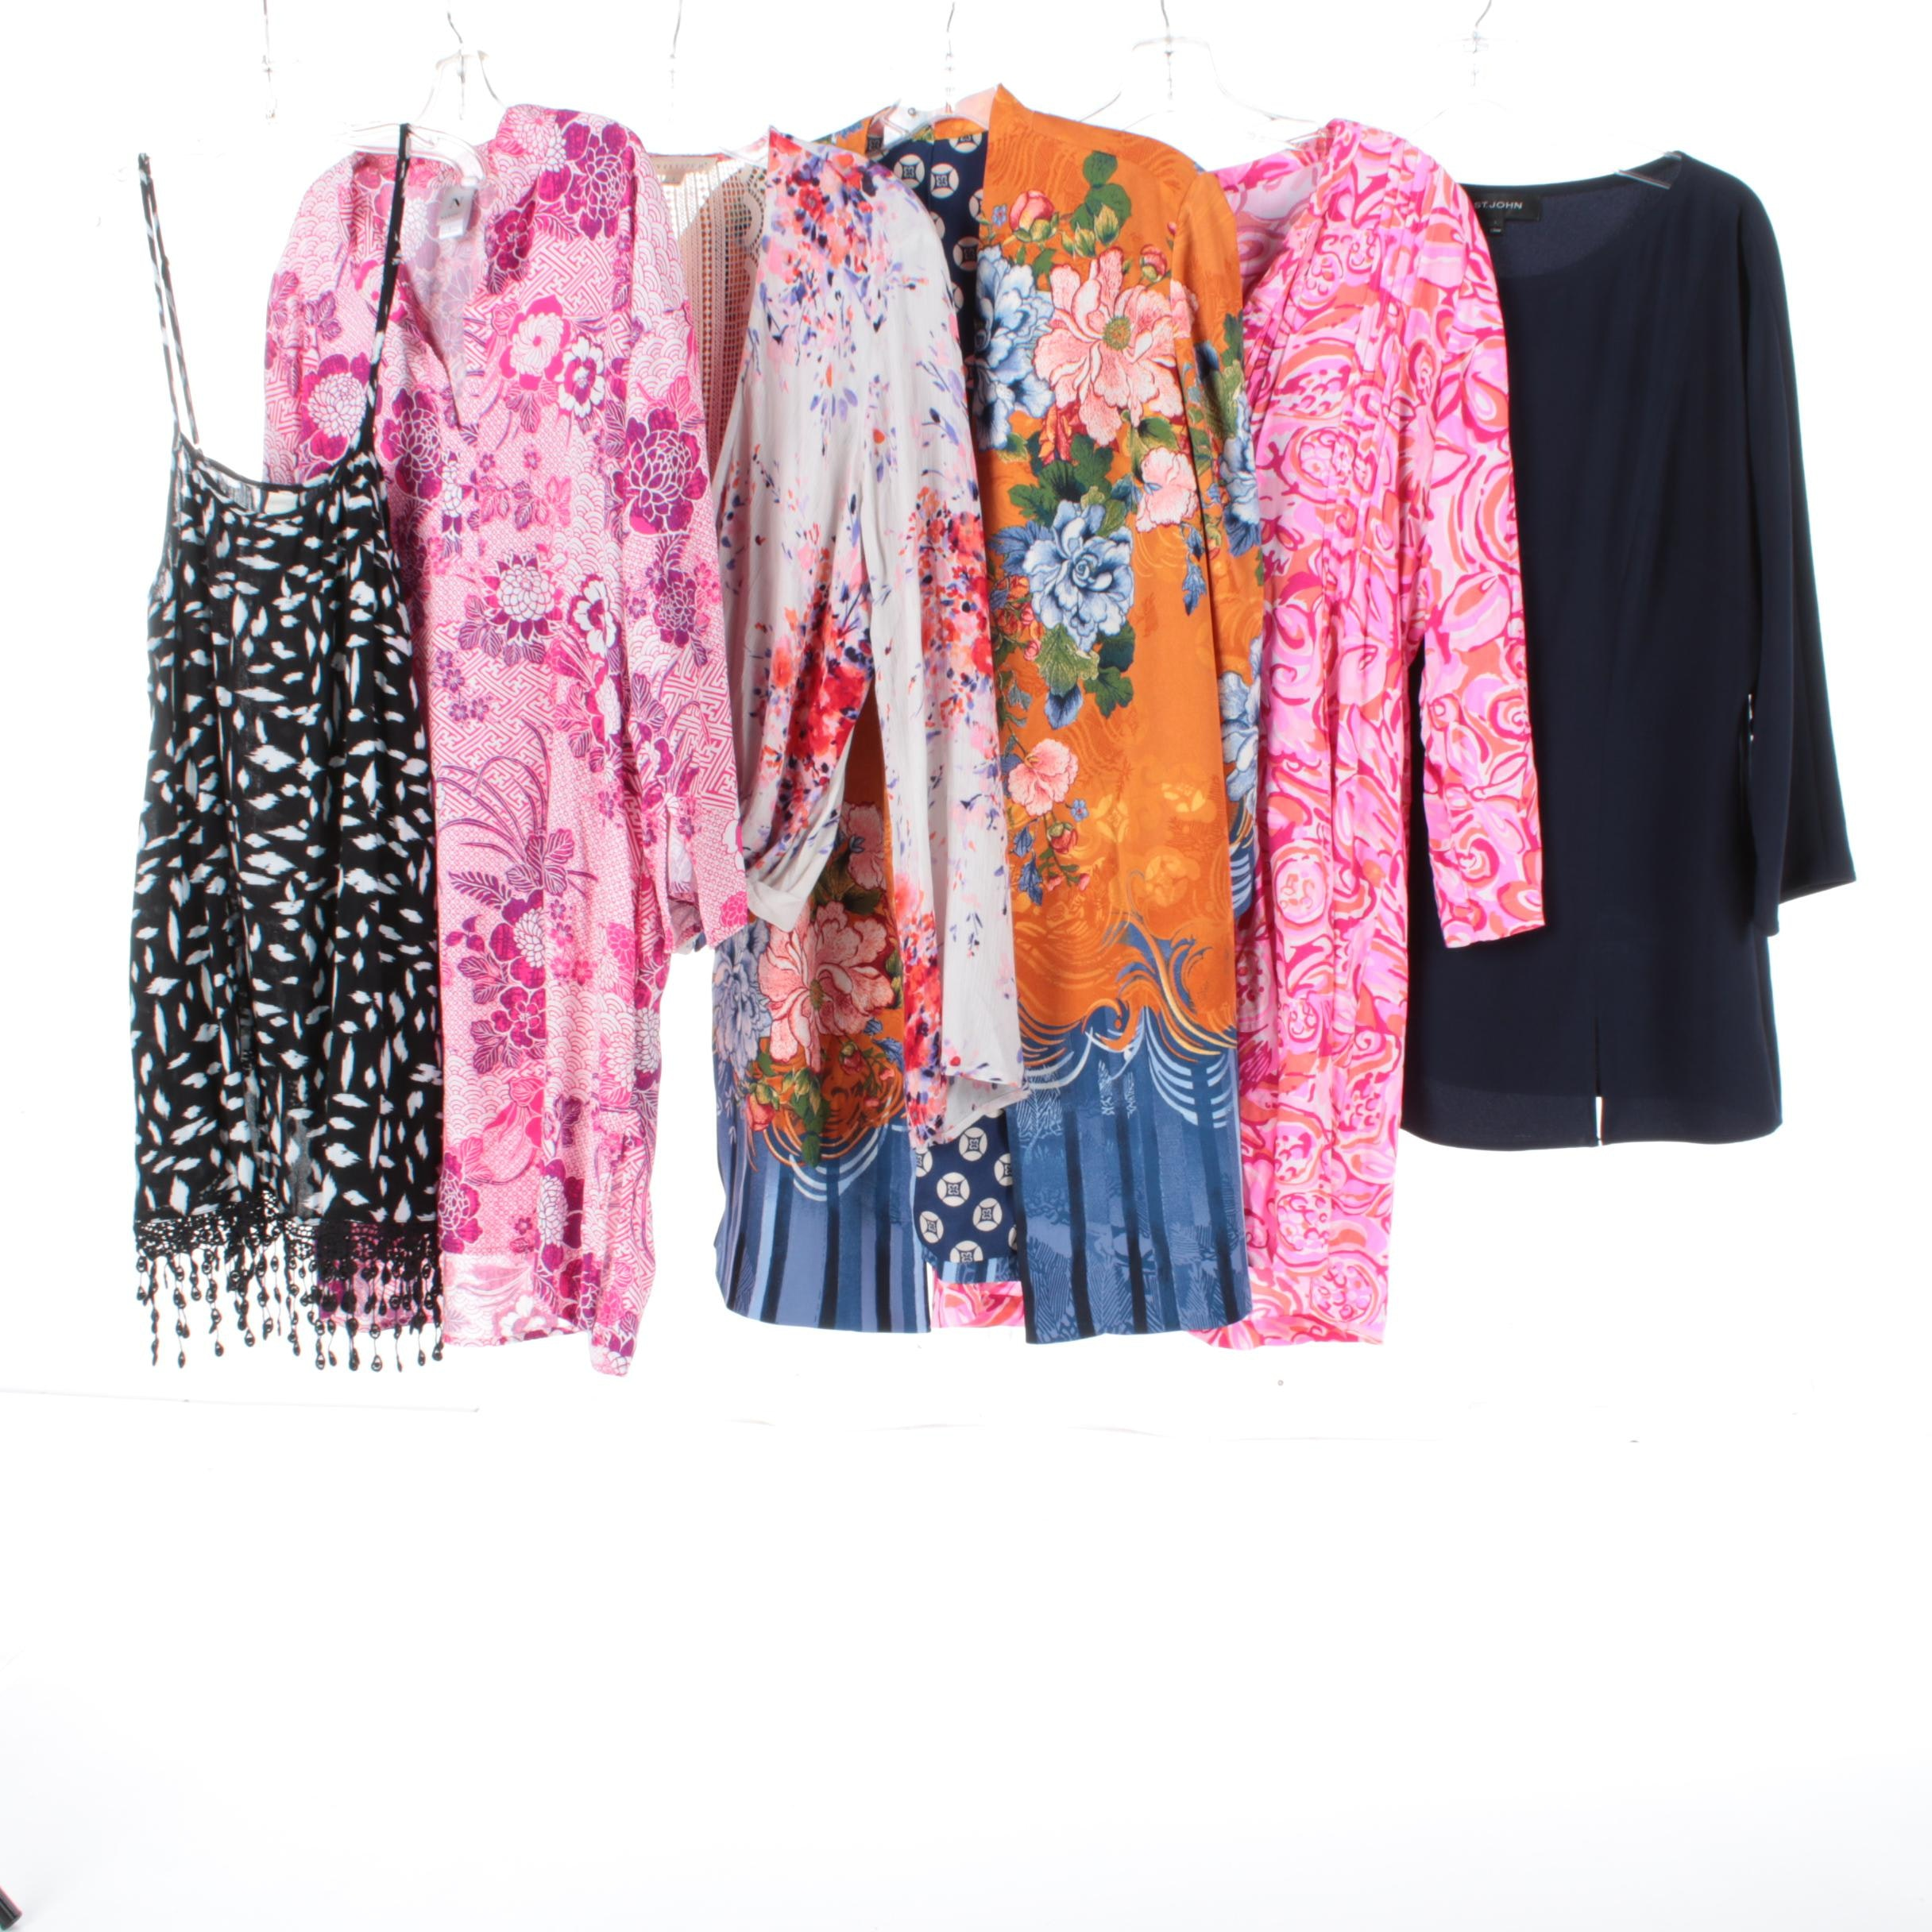 Women's Tops, Tunics, and Caftans Including St. John and Lilly Pulitzer